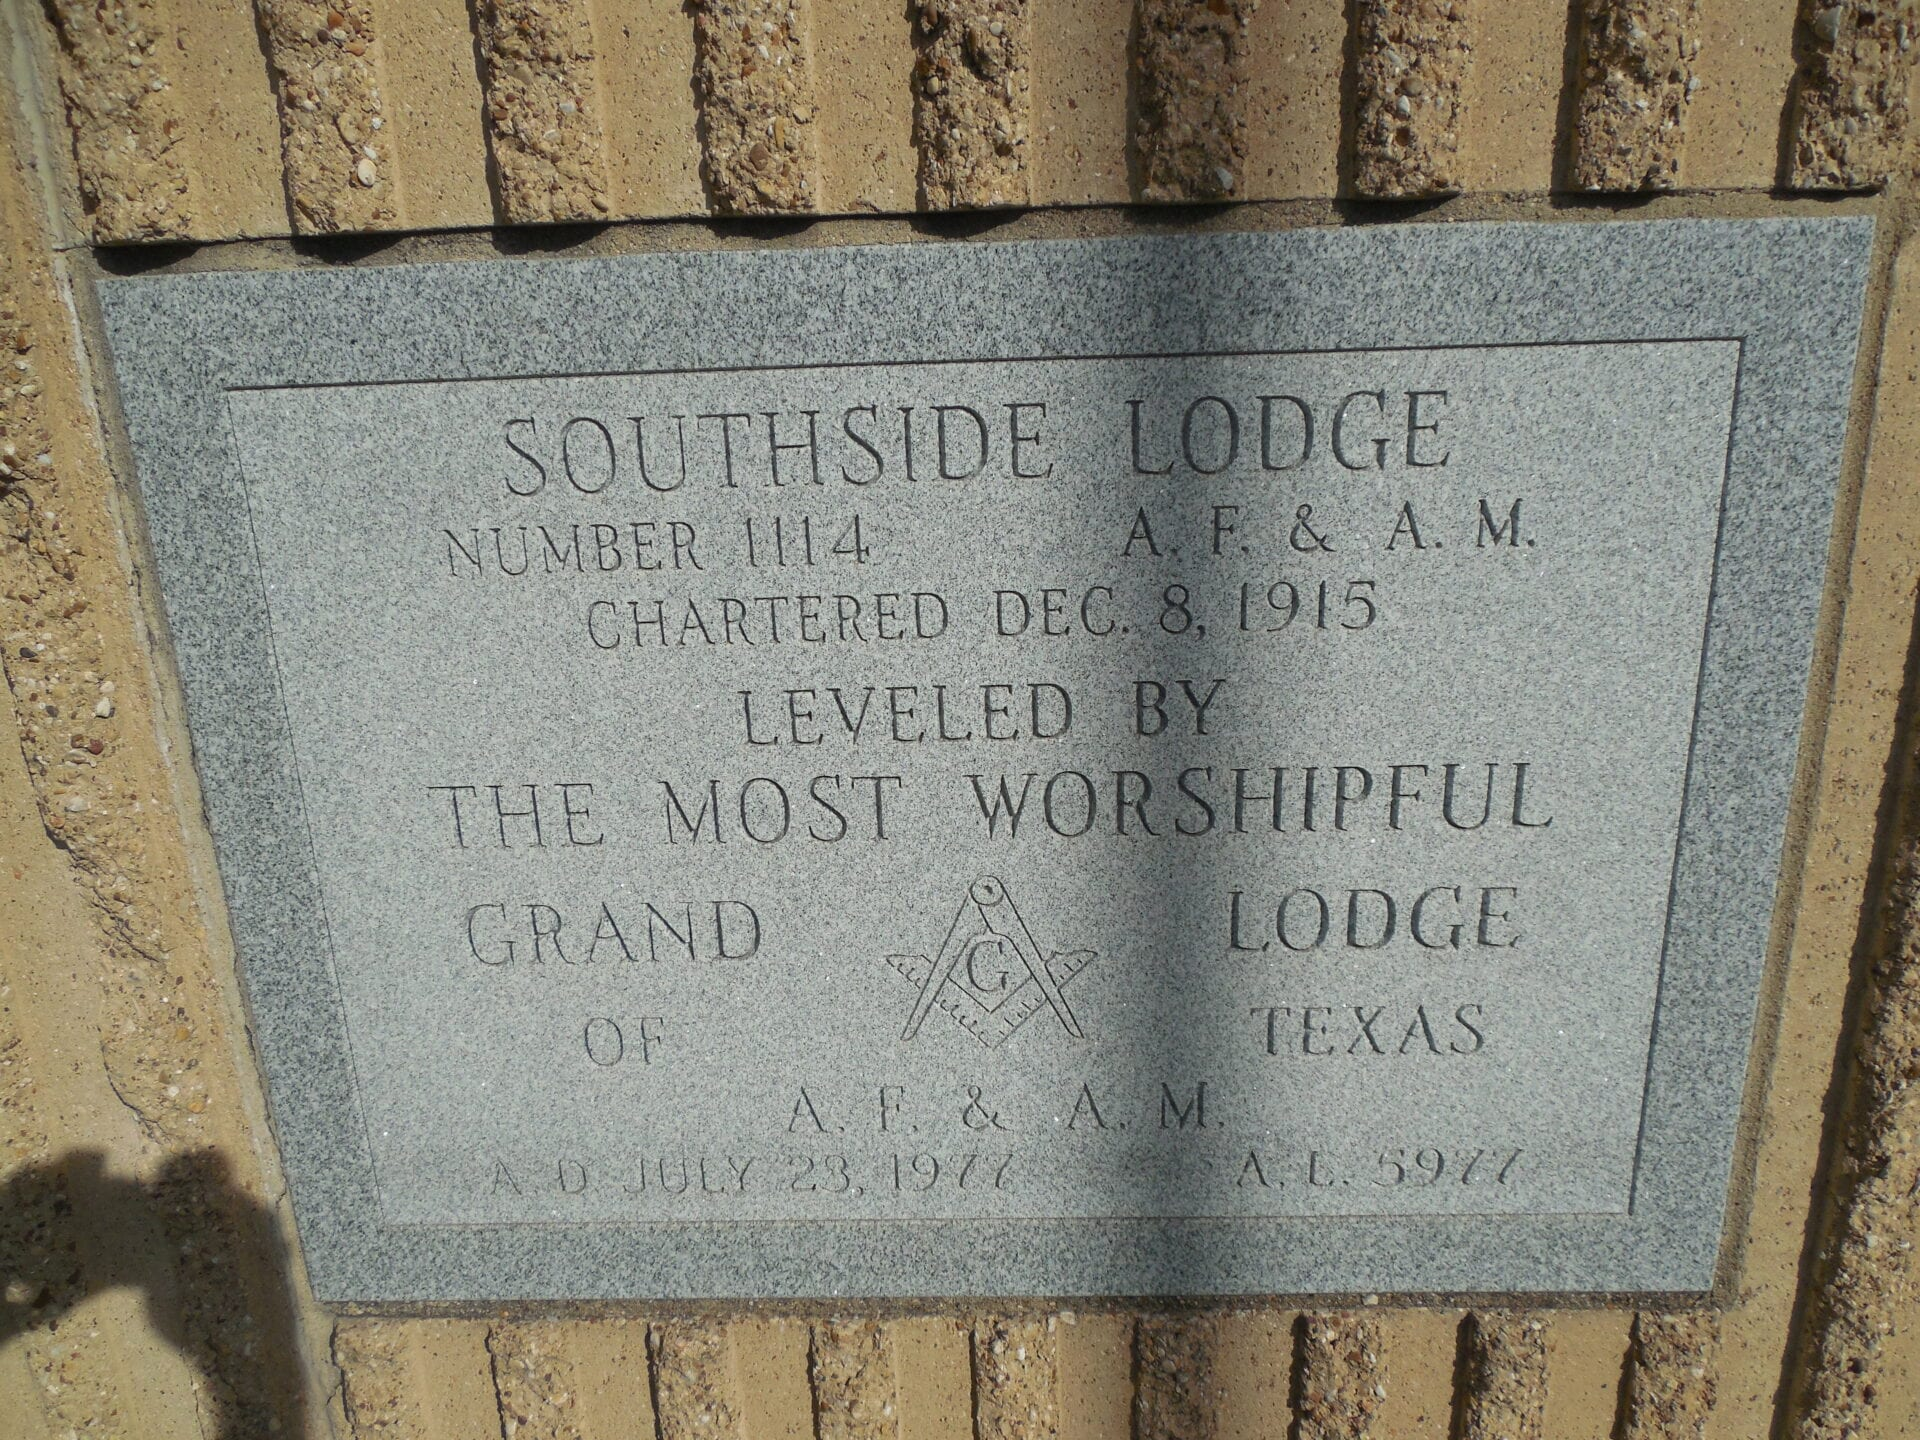 Southside Masonic Lodge #1114A.F.&A.M